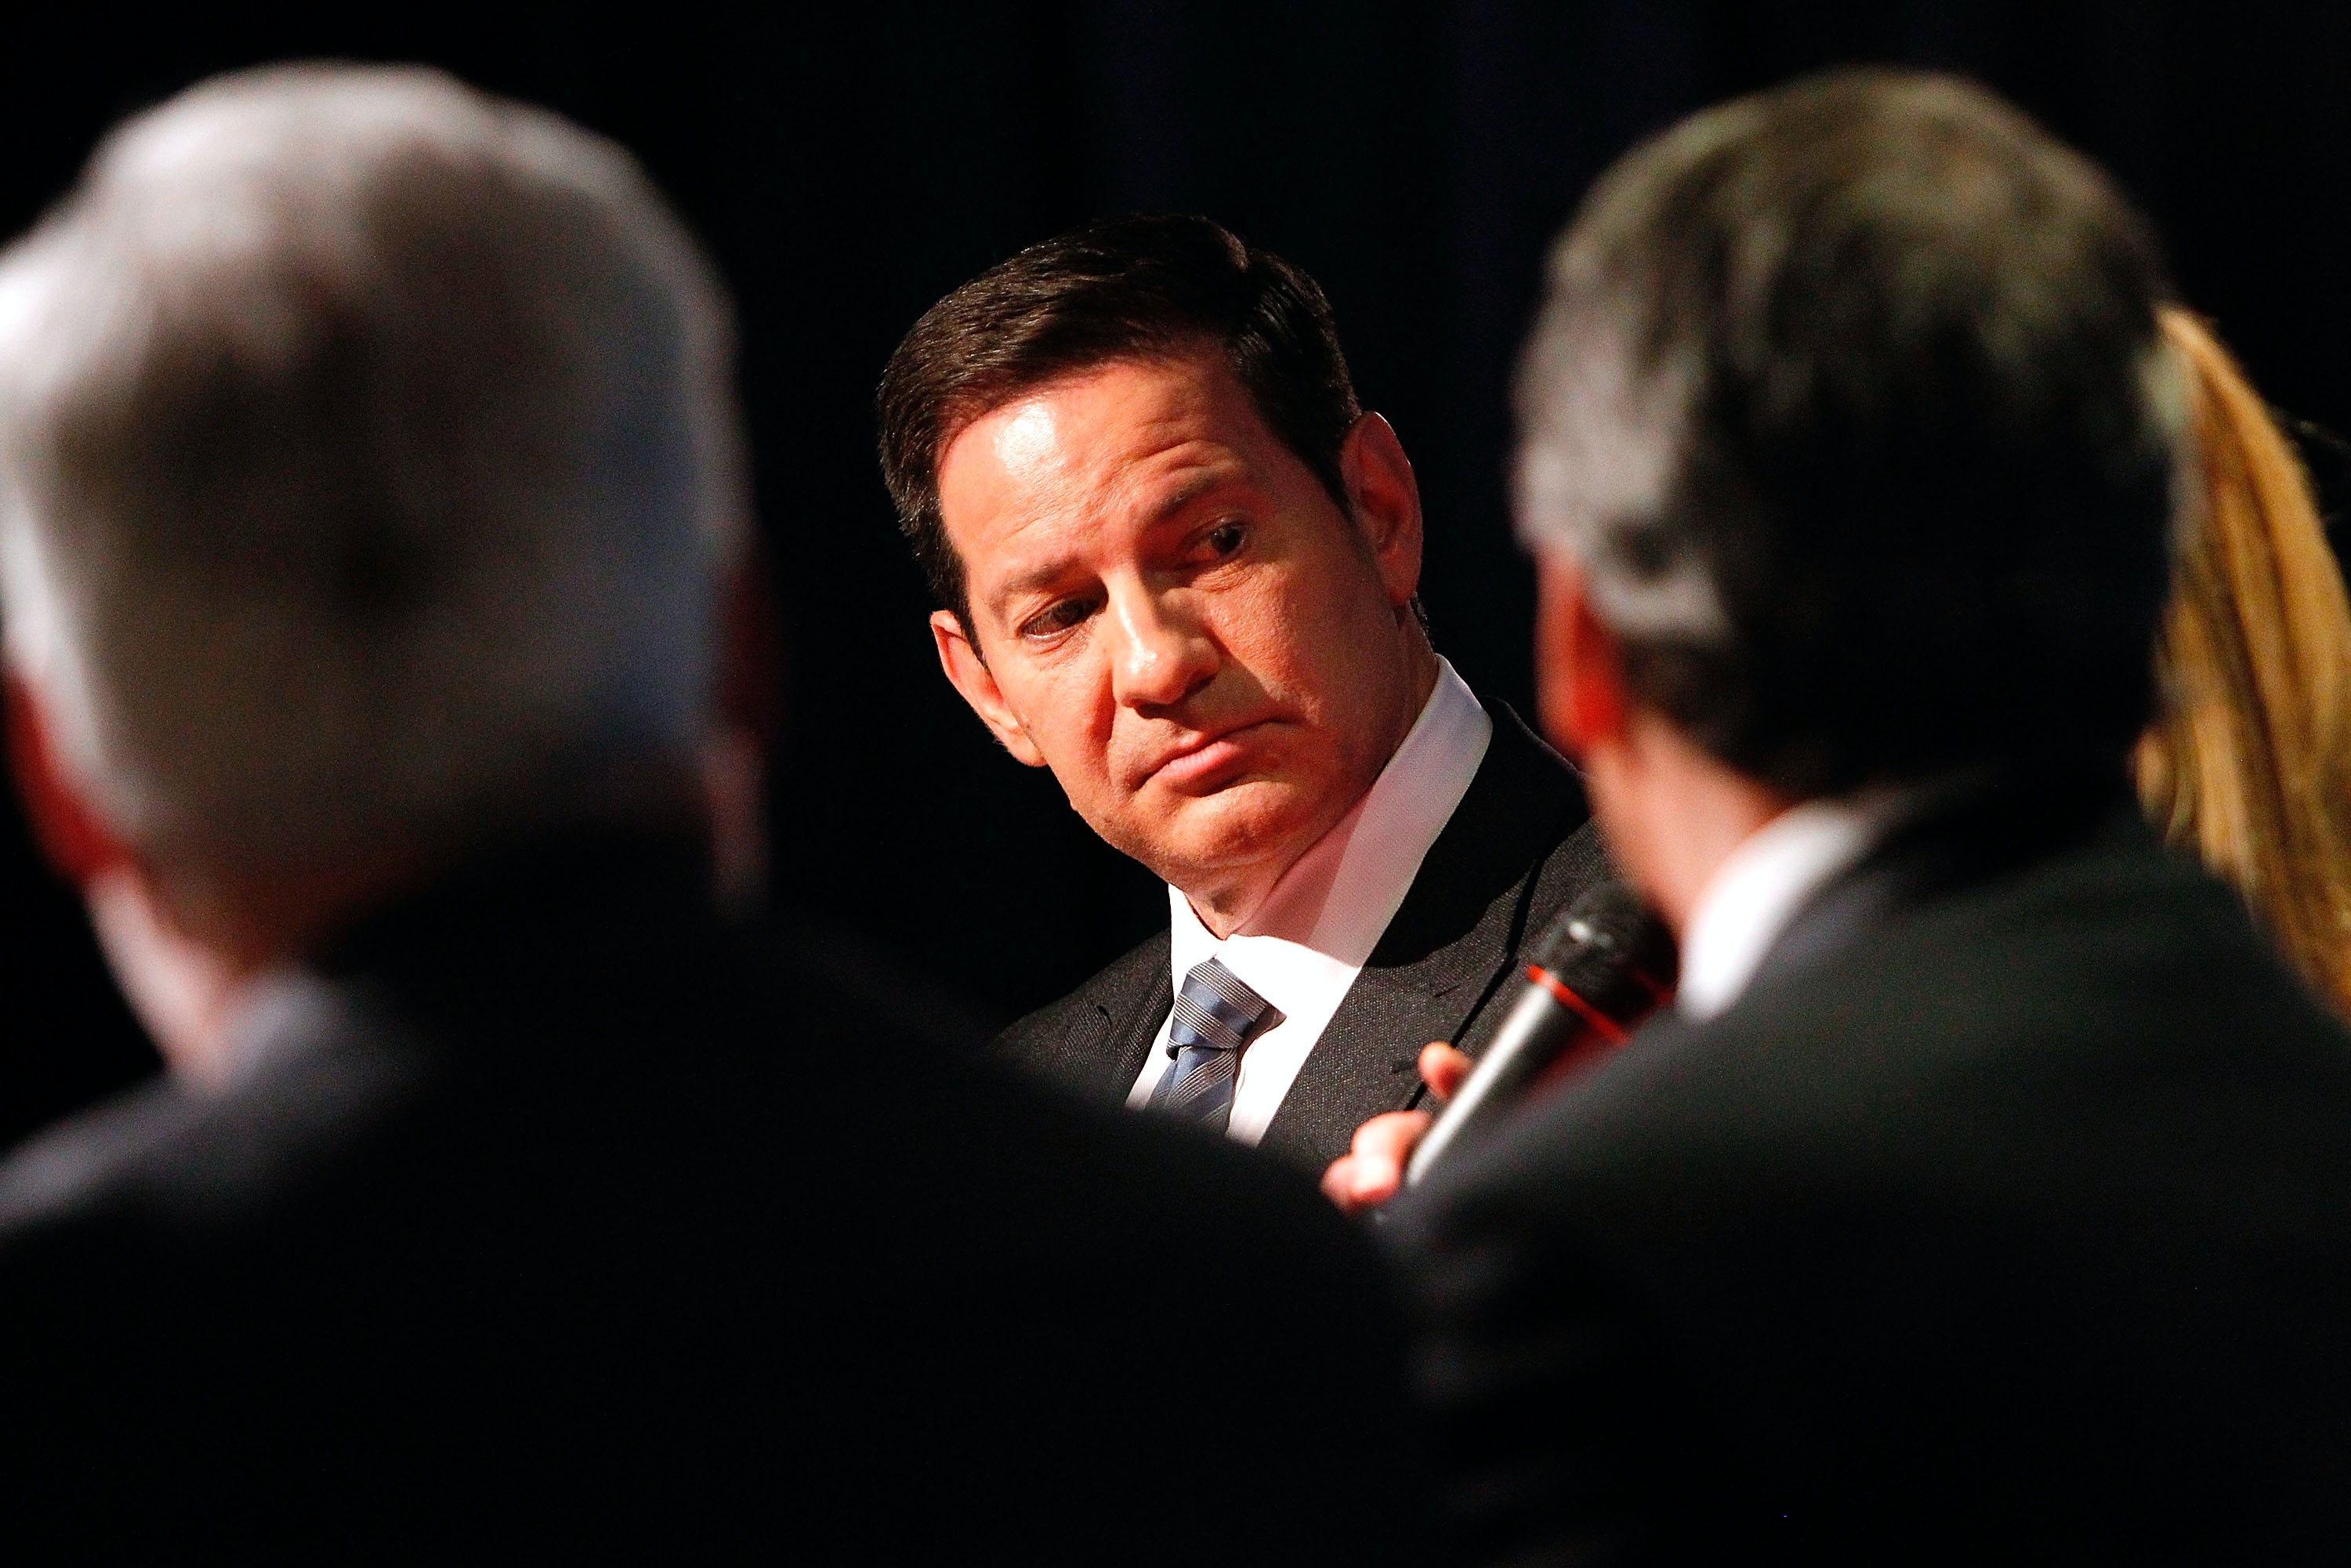 Five Women Claim Political Analyst Mark Halperin Sexually Harassed Them